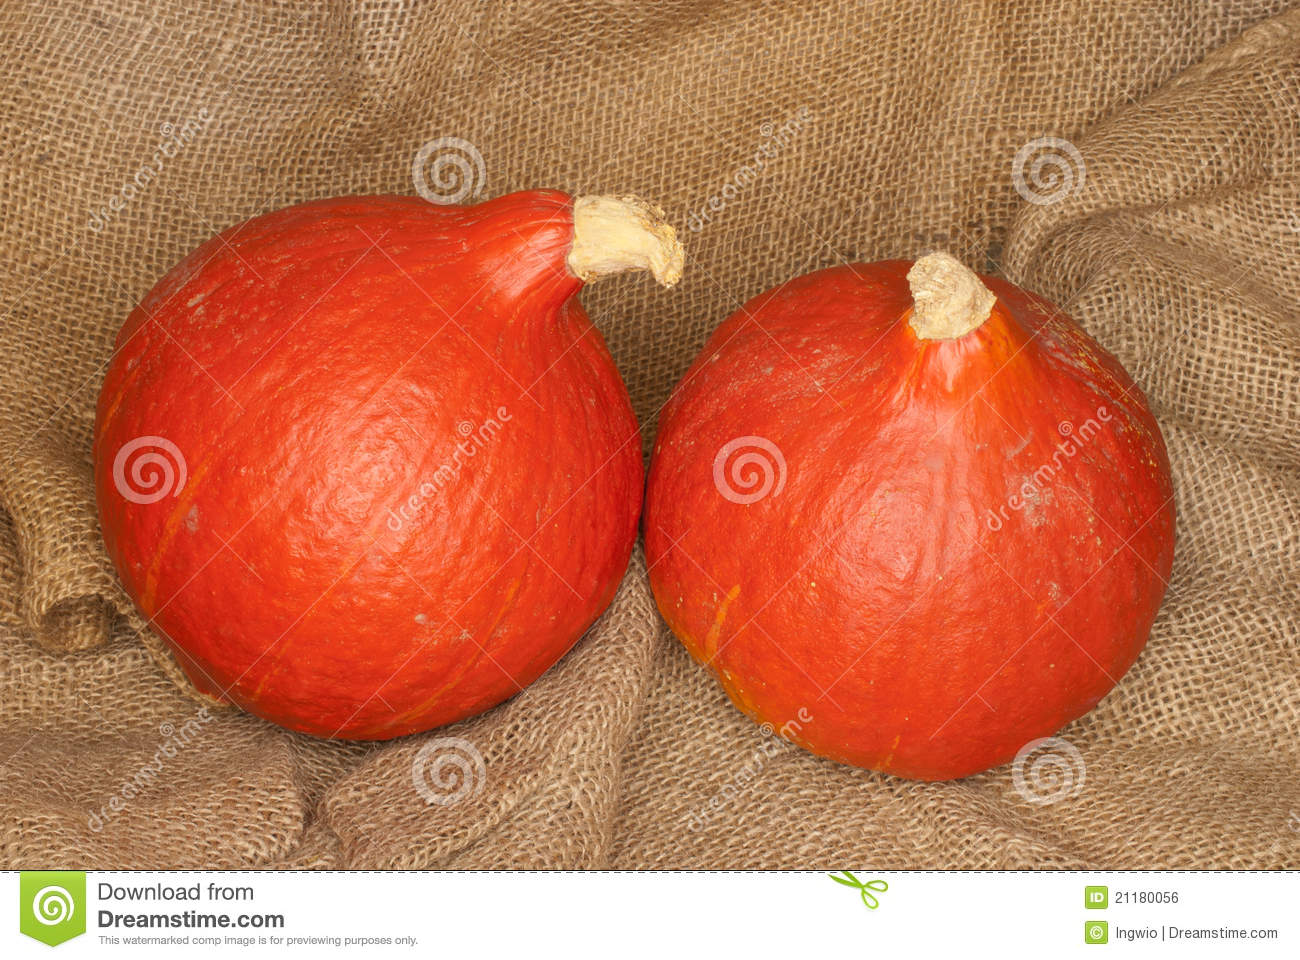 Cucurbita Maxima Stock Photos, Images, & Pictures.